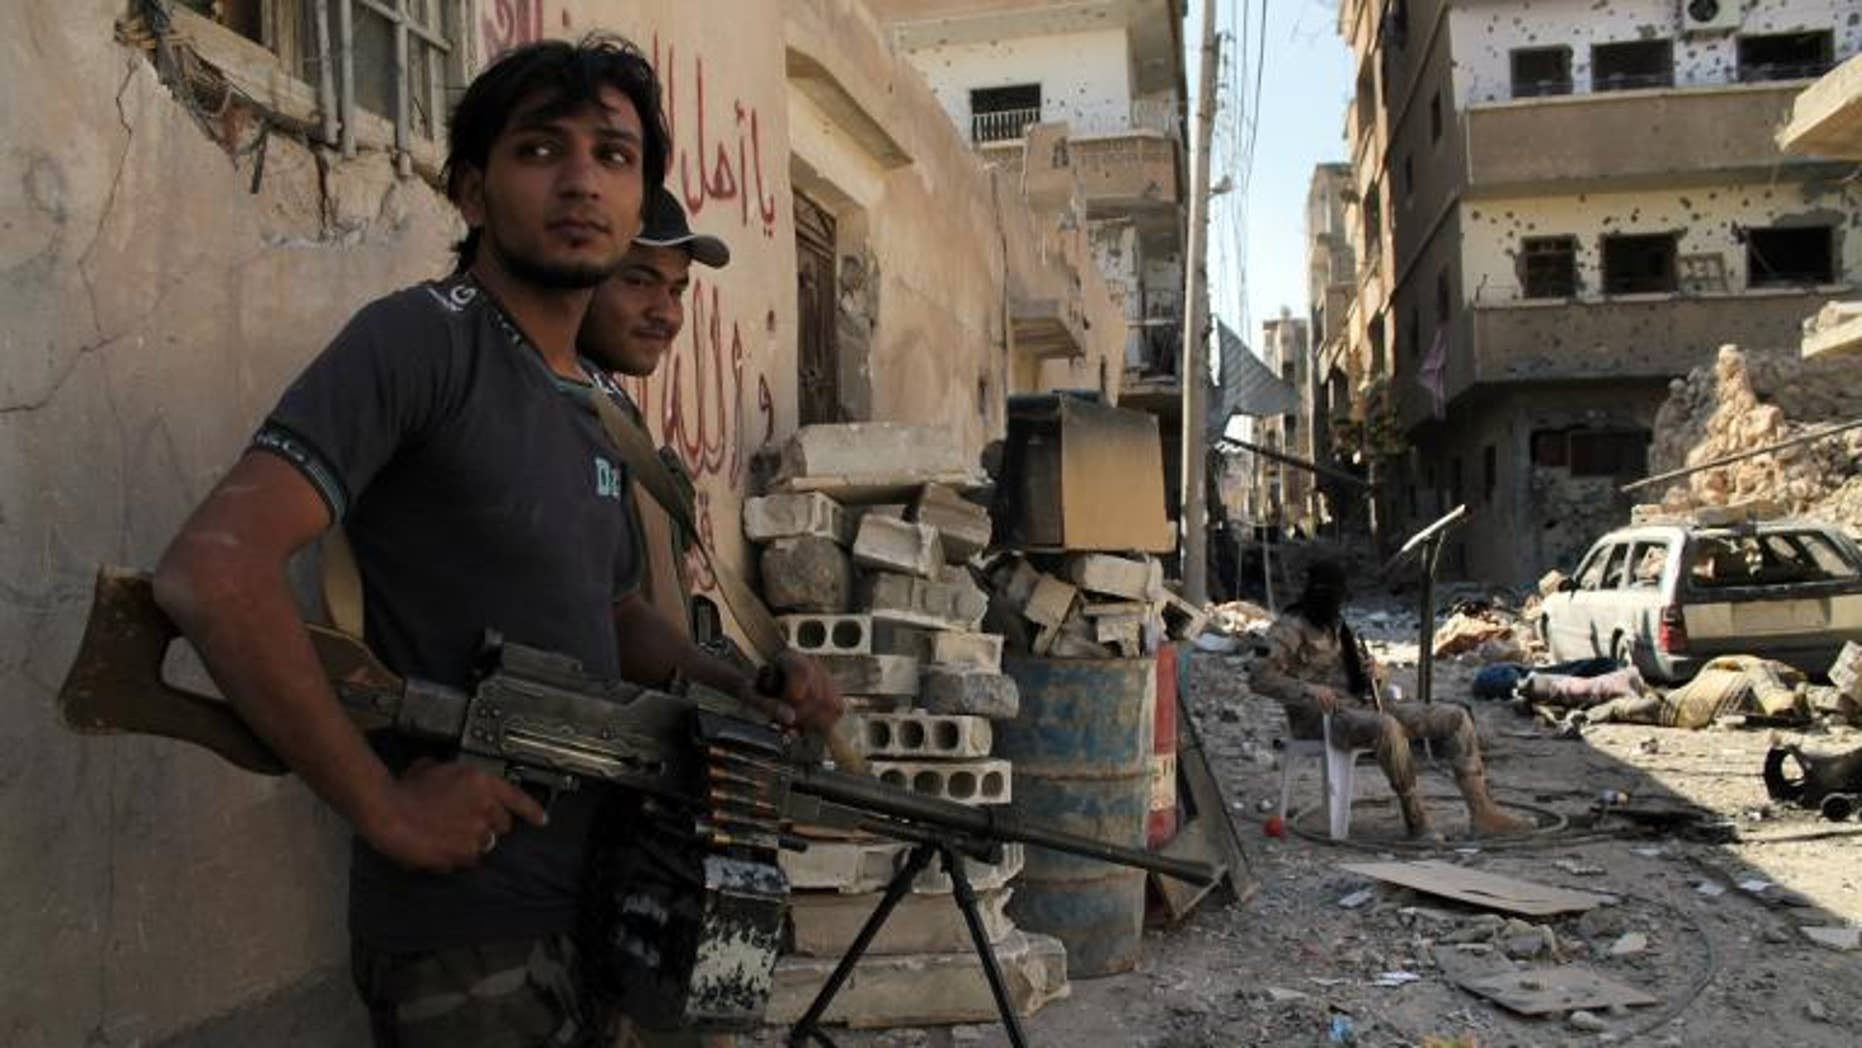 Opposition fighters hold a position in the Jubaila neighbourhood of Syria's northeastern city of Deir Ezzor on September 30, 2013